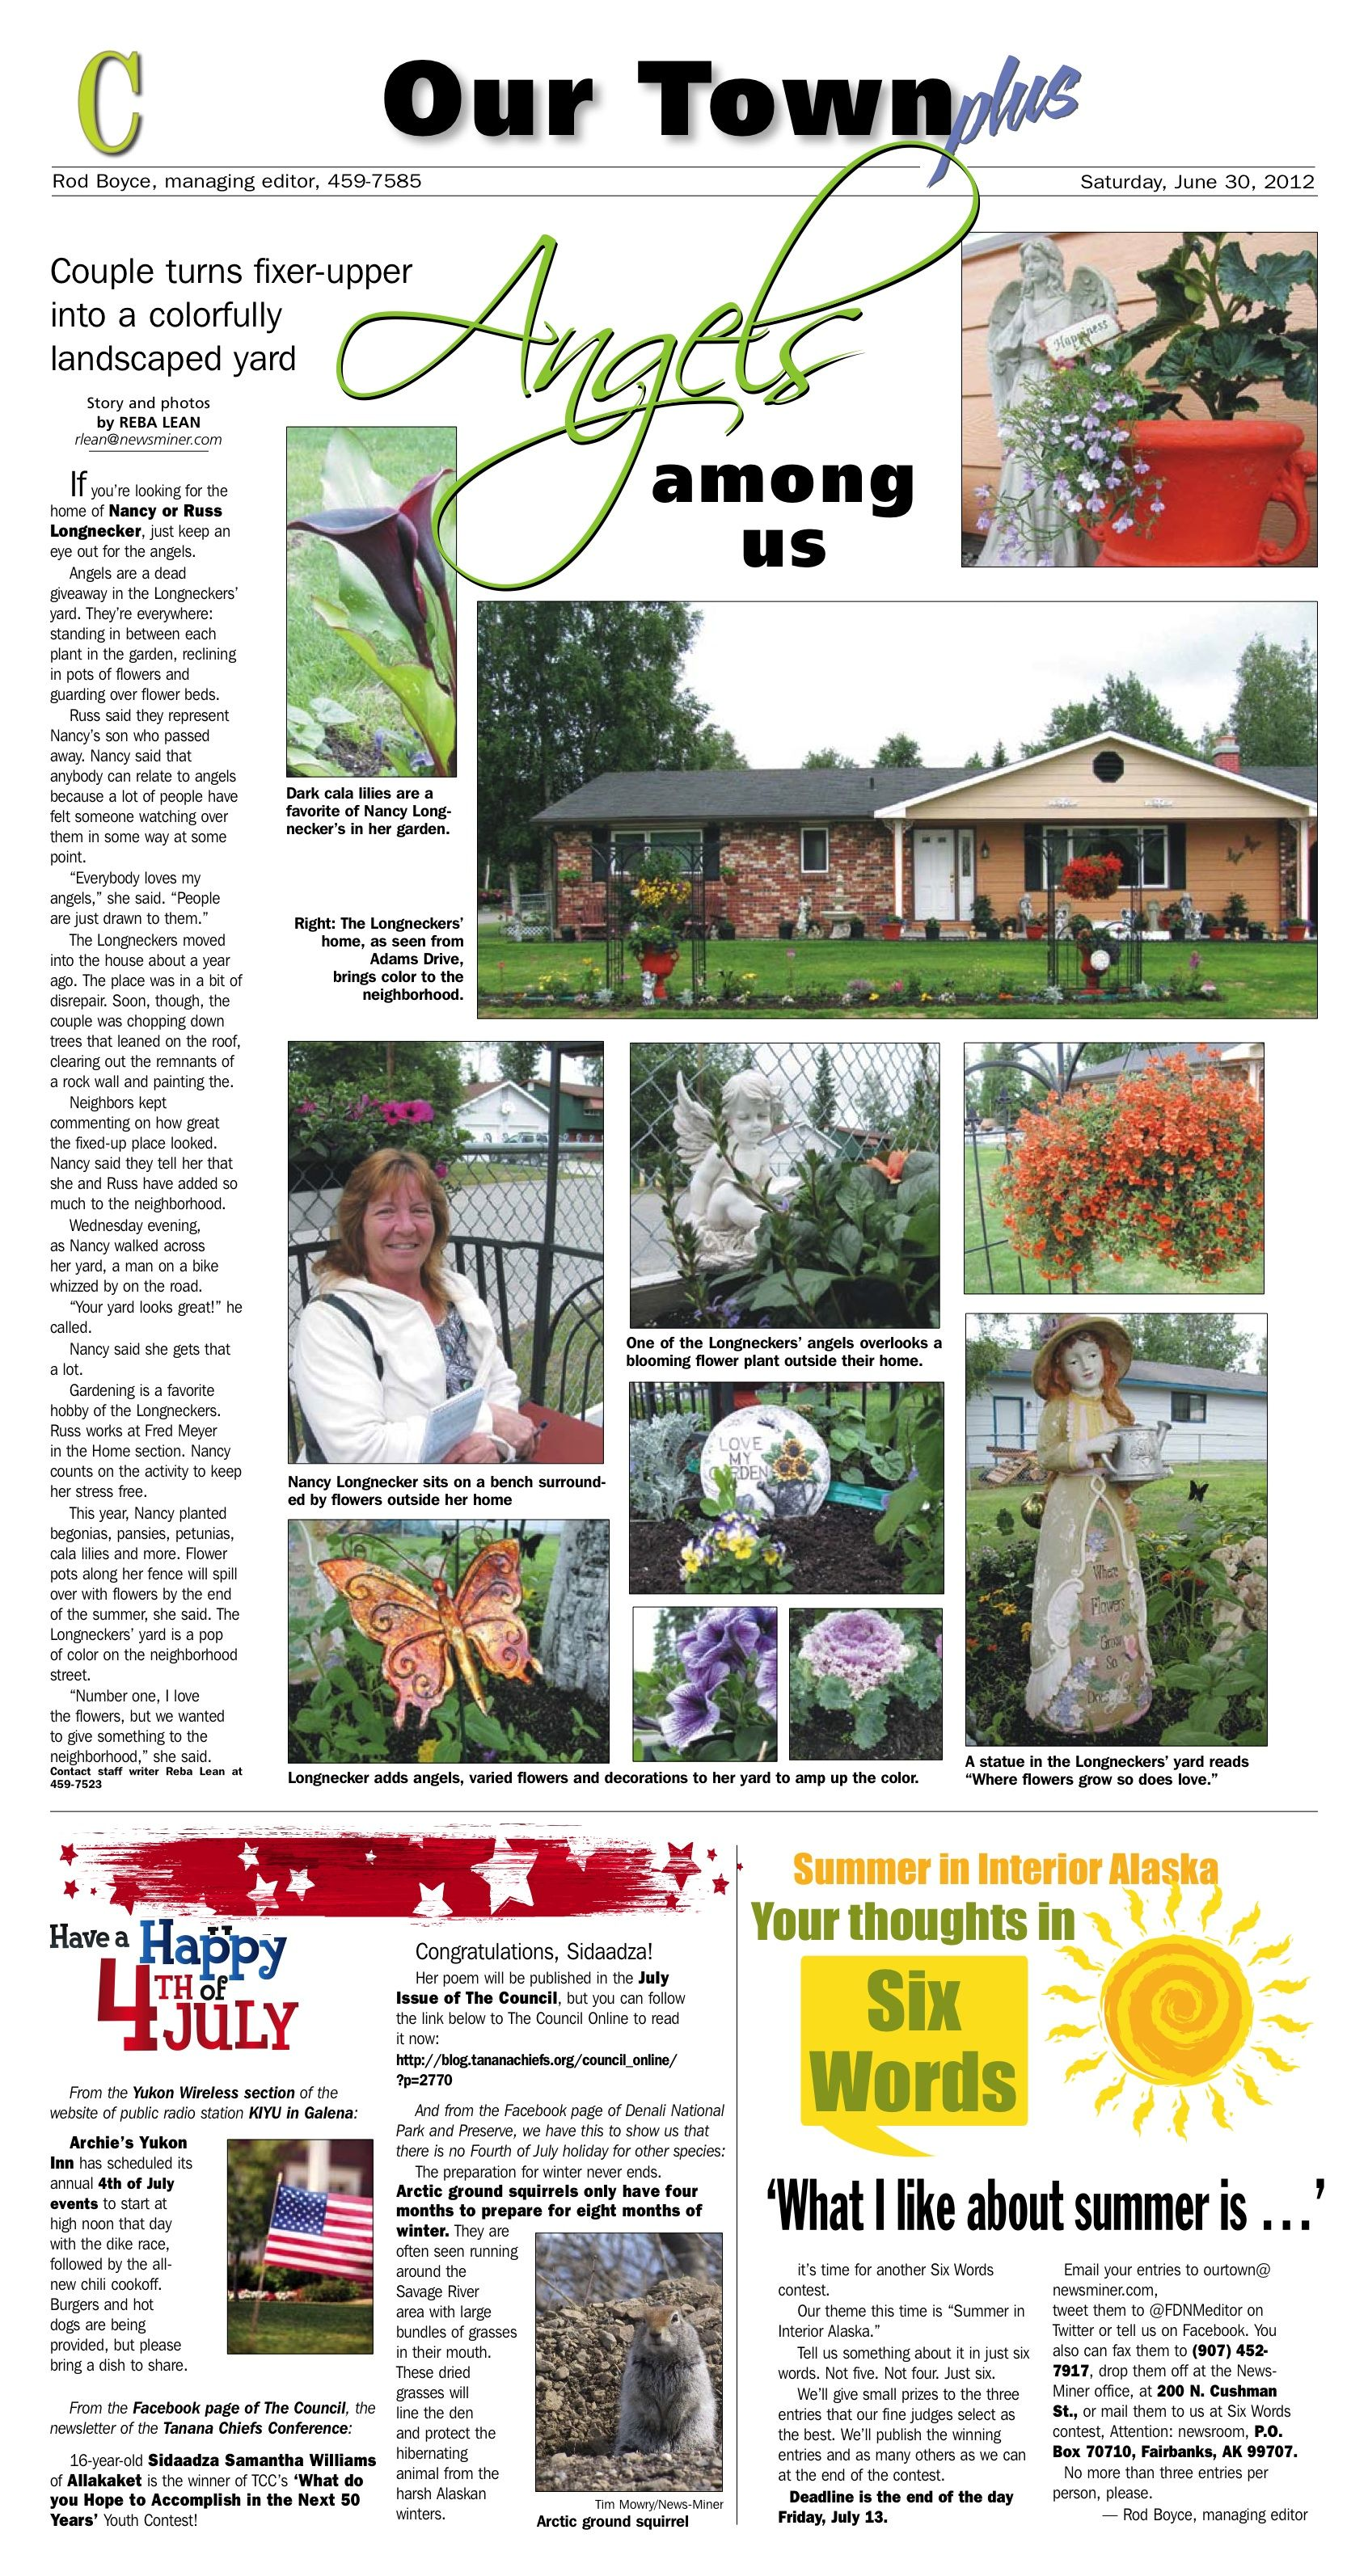 Sneak peek time: All you gardeners out there should like this page from tomorrow's (Saturday, June 30, 2012) edition.